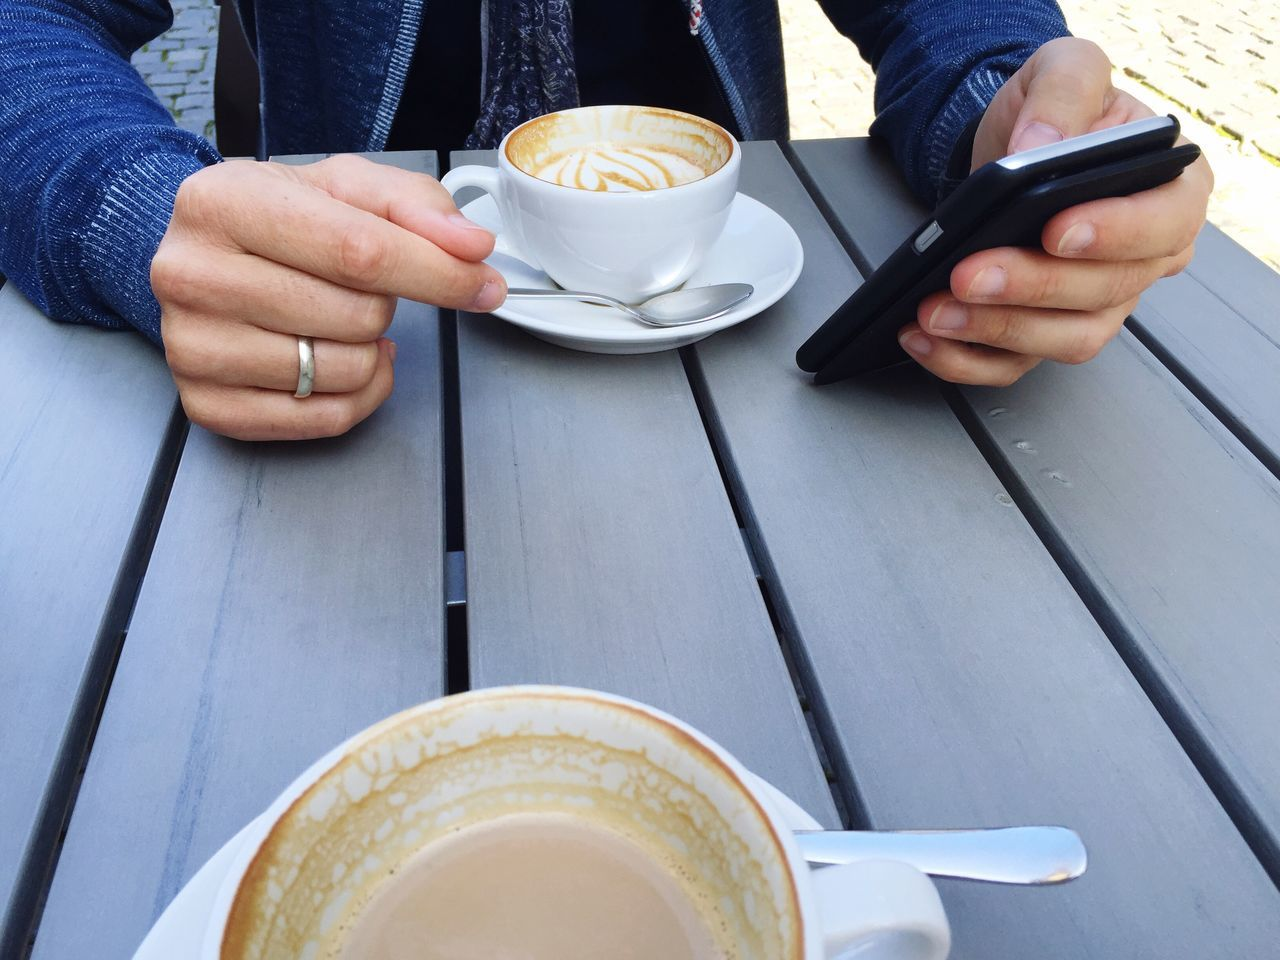 Mobile Conversations Coffee - Drink Coffee Cup Holding Men Table Real People One Person Human Hand Adult Phone Working Work Misshappiness